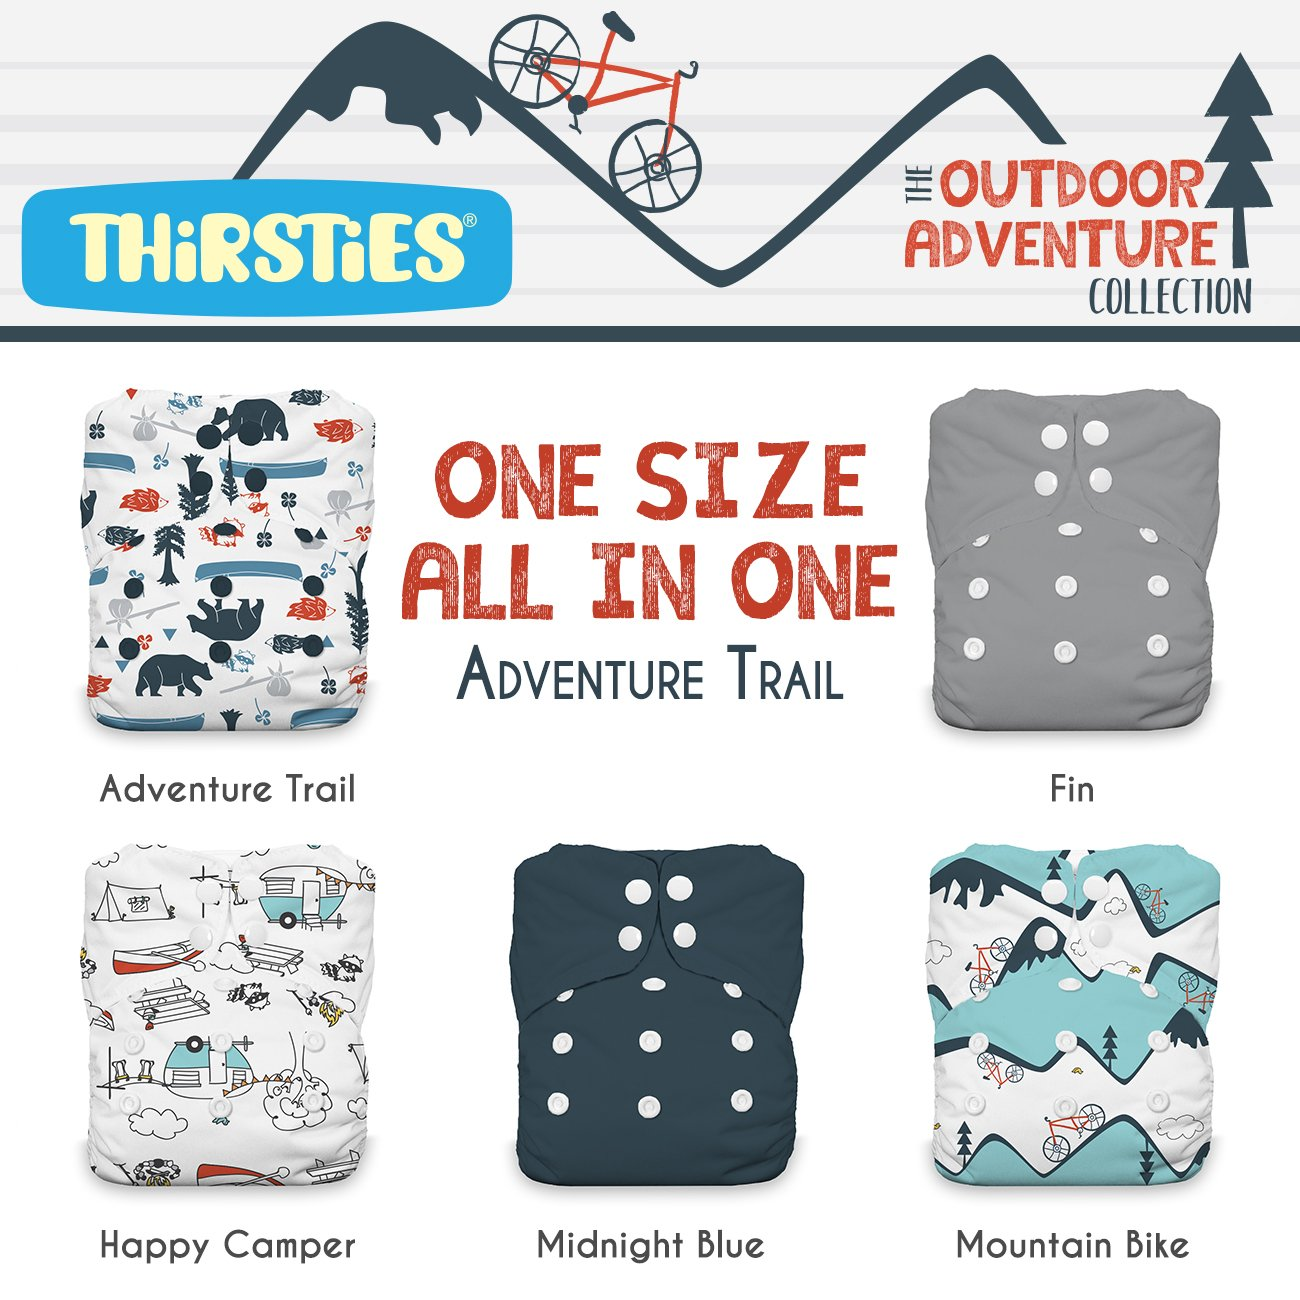 Thirsties Package Snap All In One Outdoor Adventure Collection-One Size, Adventure Trail TOSAIOPSOACAT